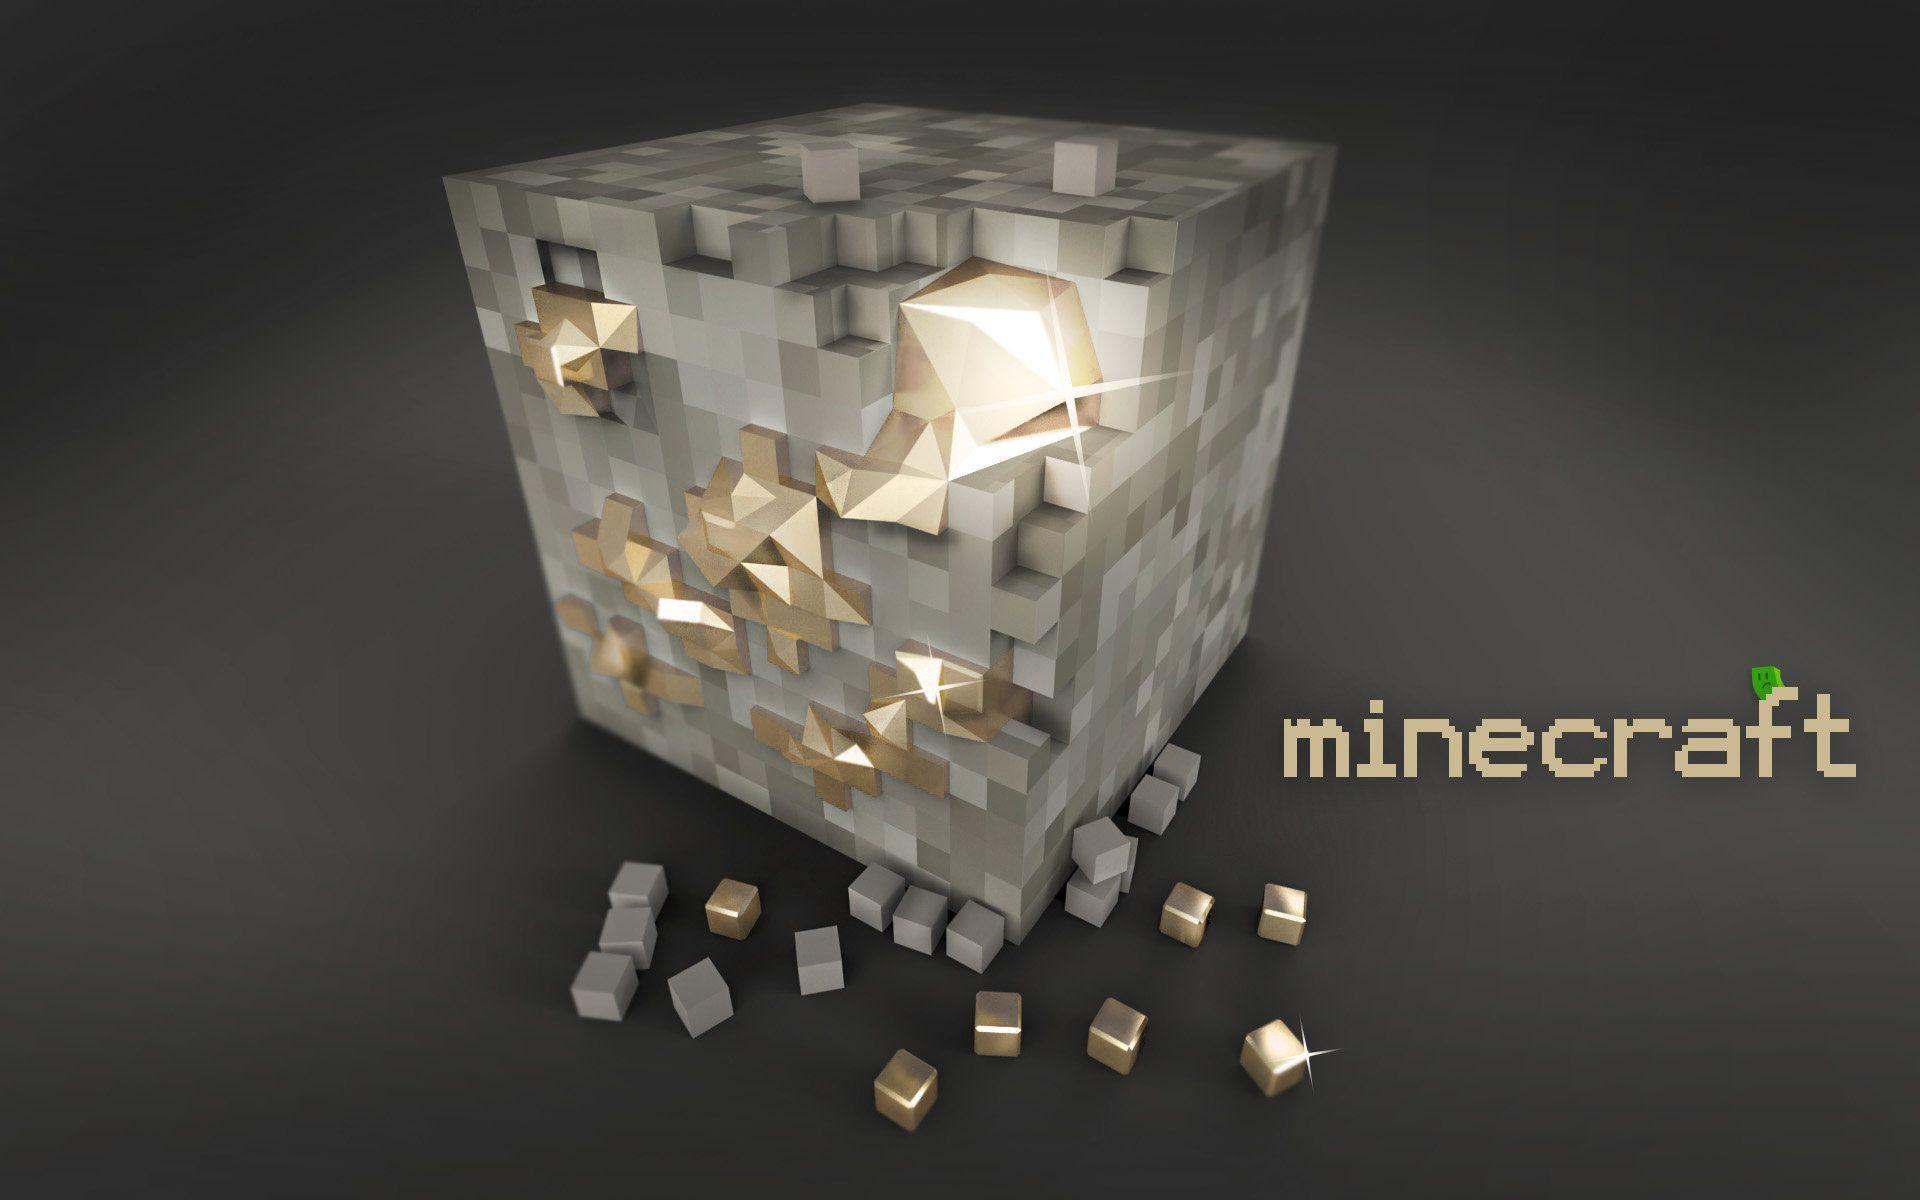 minecraft, gold, wallpaper, paper, pictures, jocuri